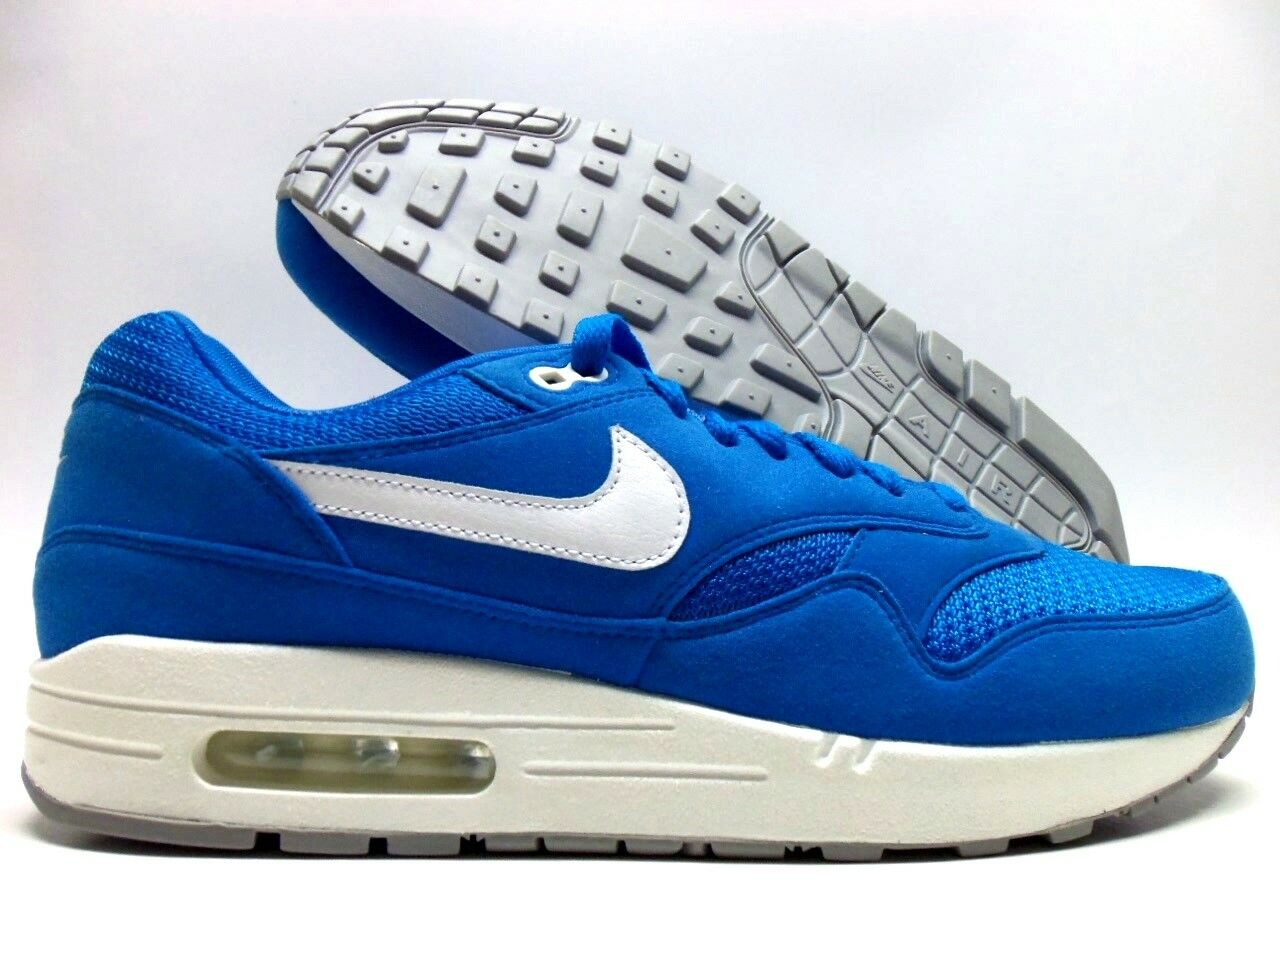 NIKE AIR MAX 1 ID LASER BLUE/WHITE-COOL GREY SIZE MEN'S 10 [943756-983]